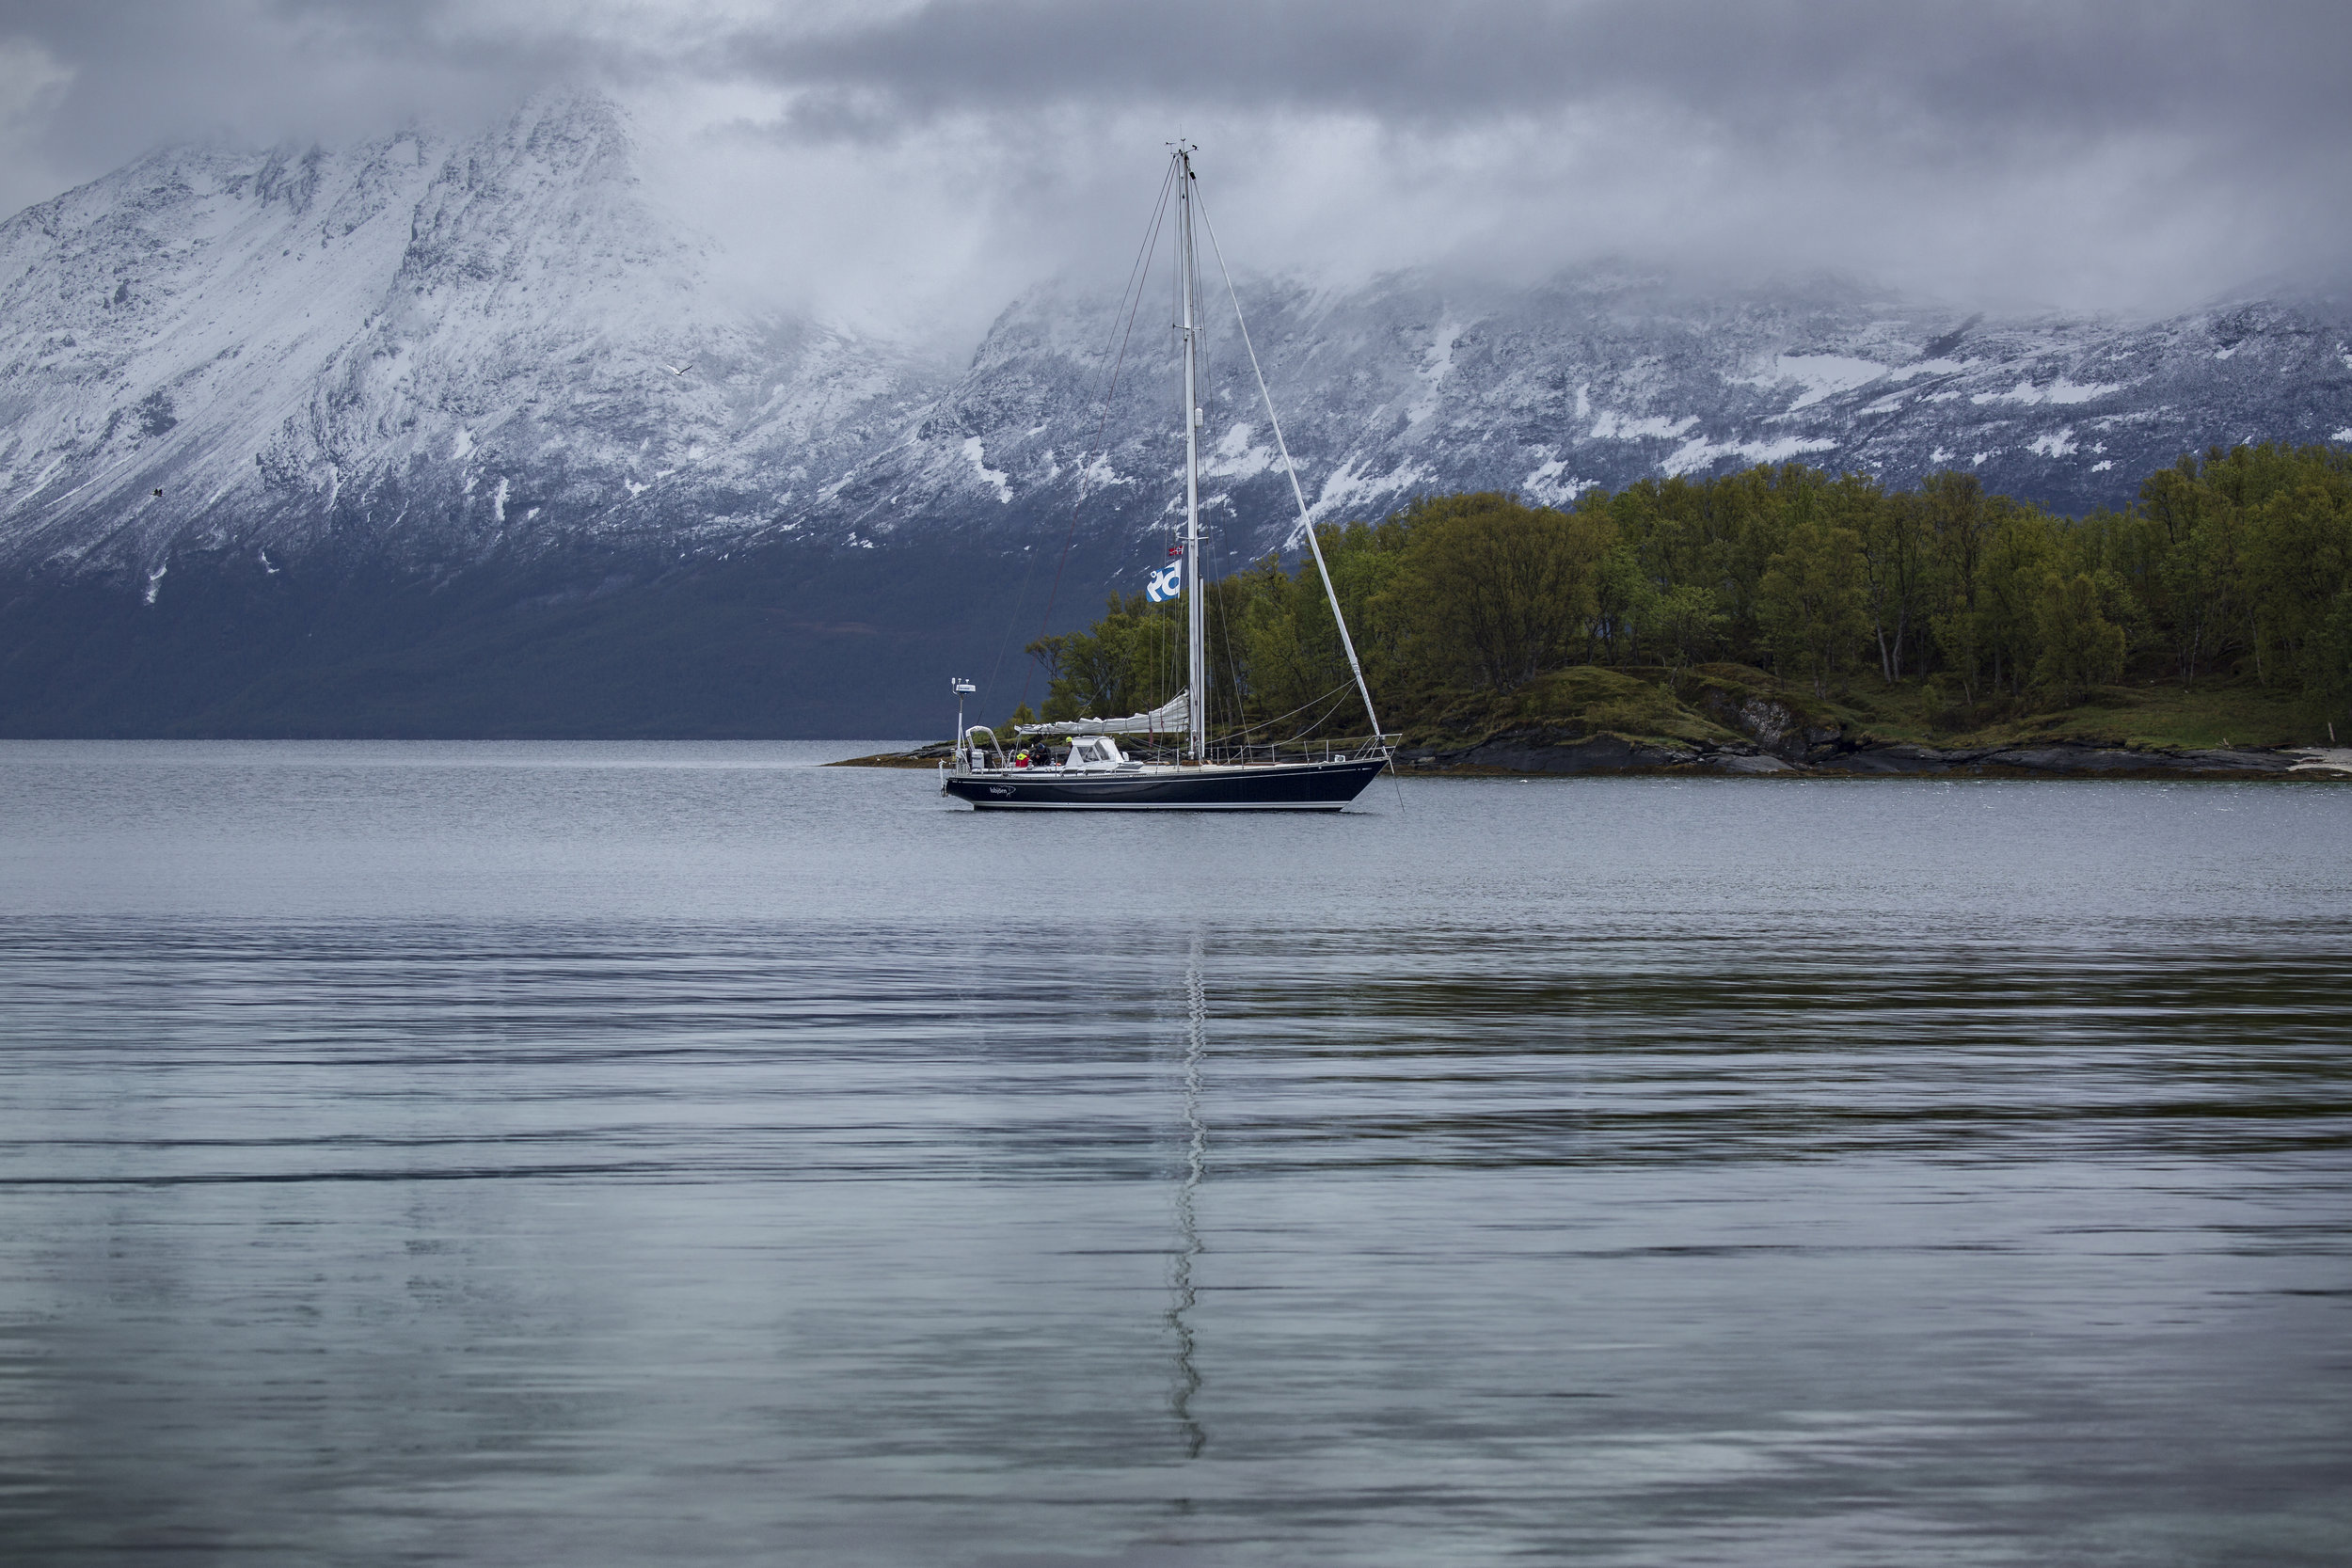 The anchorage in northern Norway, above 70º North, where Mia collected the eagle feathers for me just before the offshore passage to Spitsbergen. They remained on the boat for the next 8,000 miles, before I gave them back to the sea on the morning of my mom's birthday.